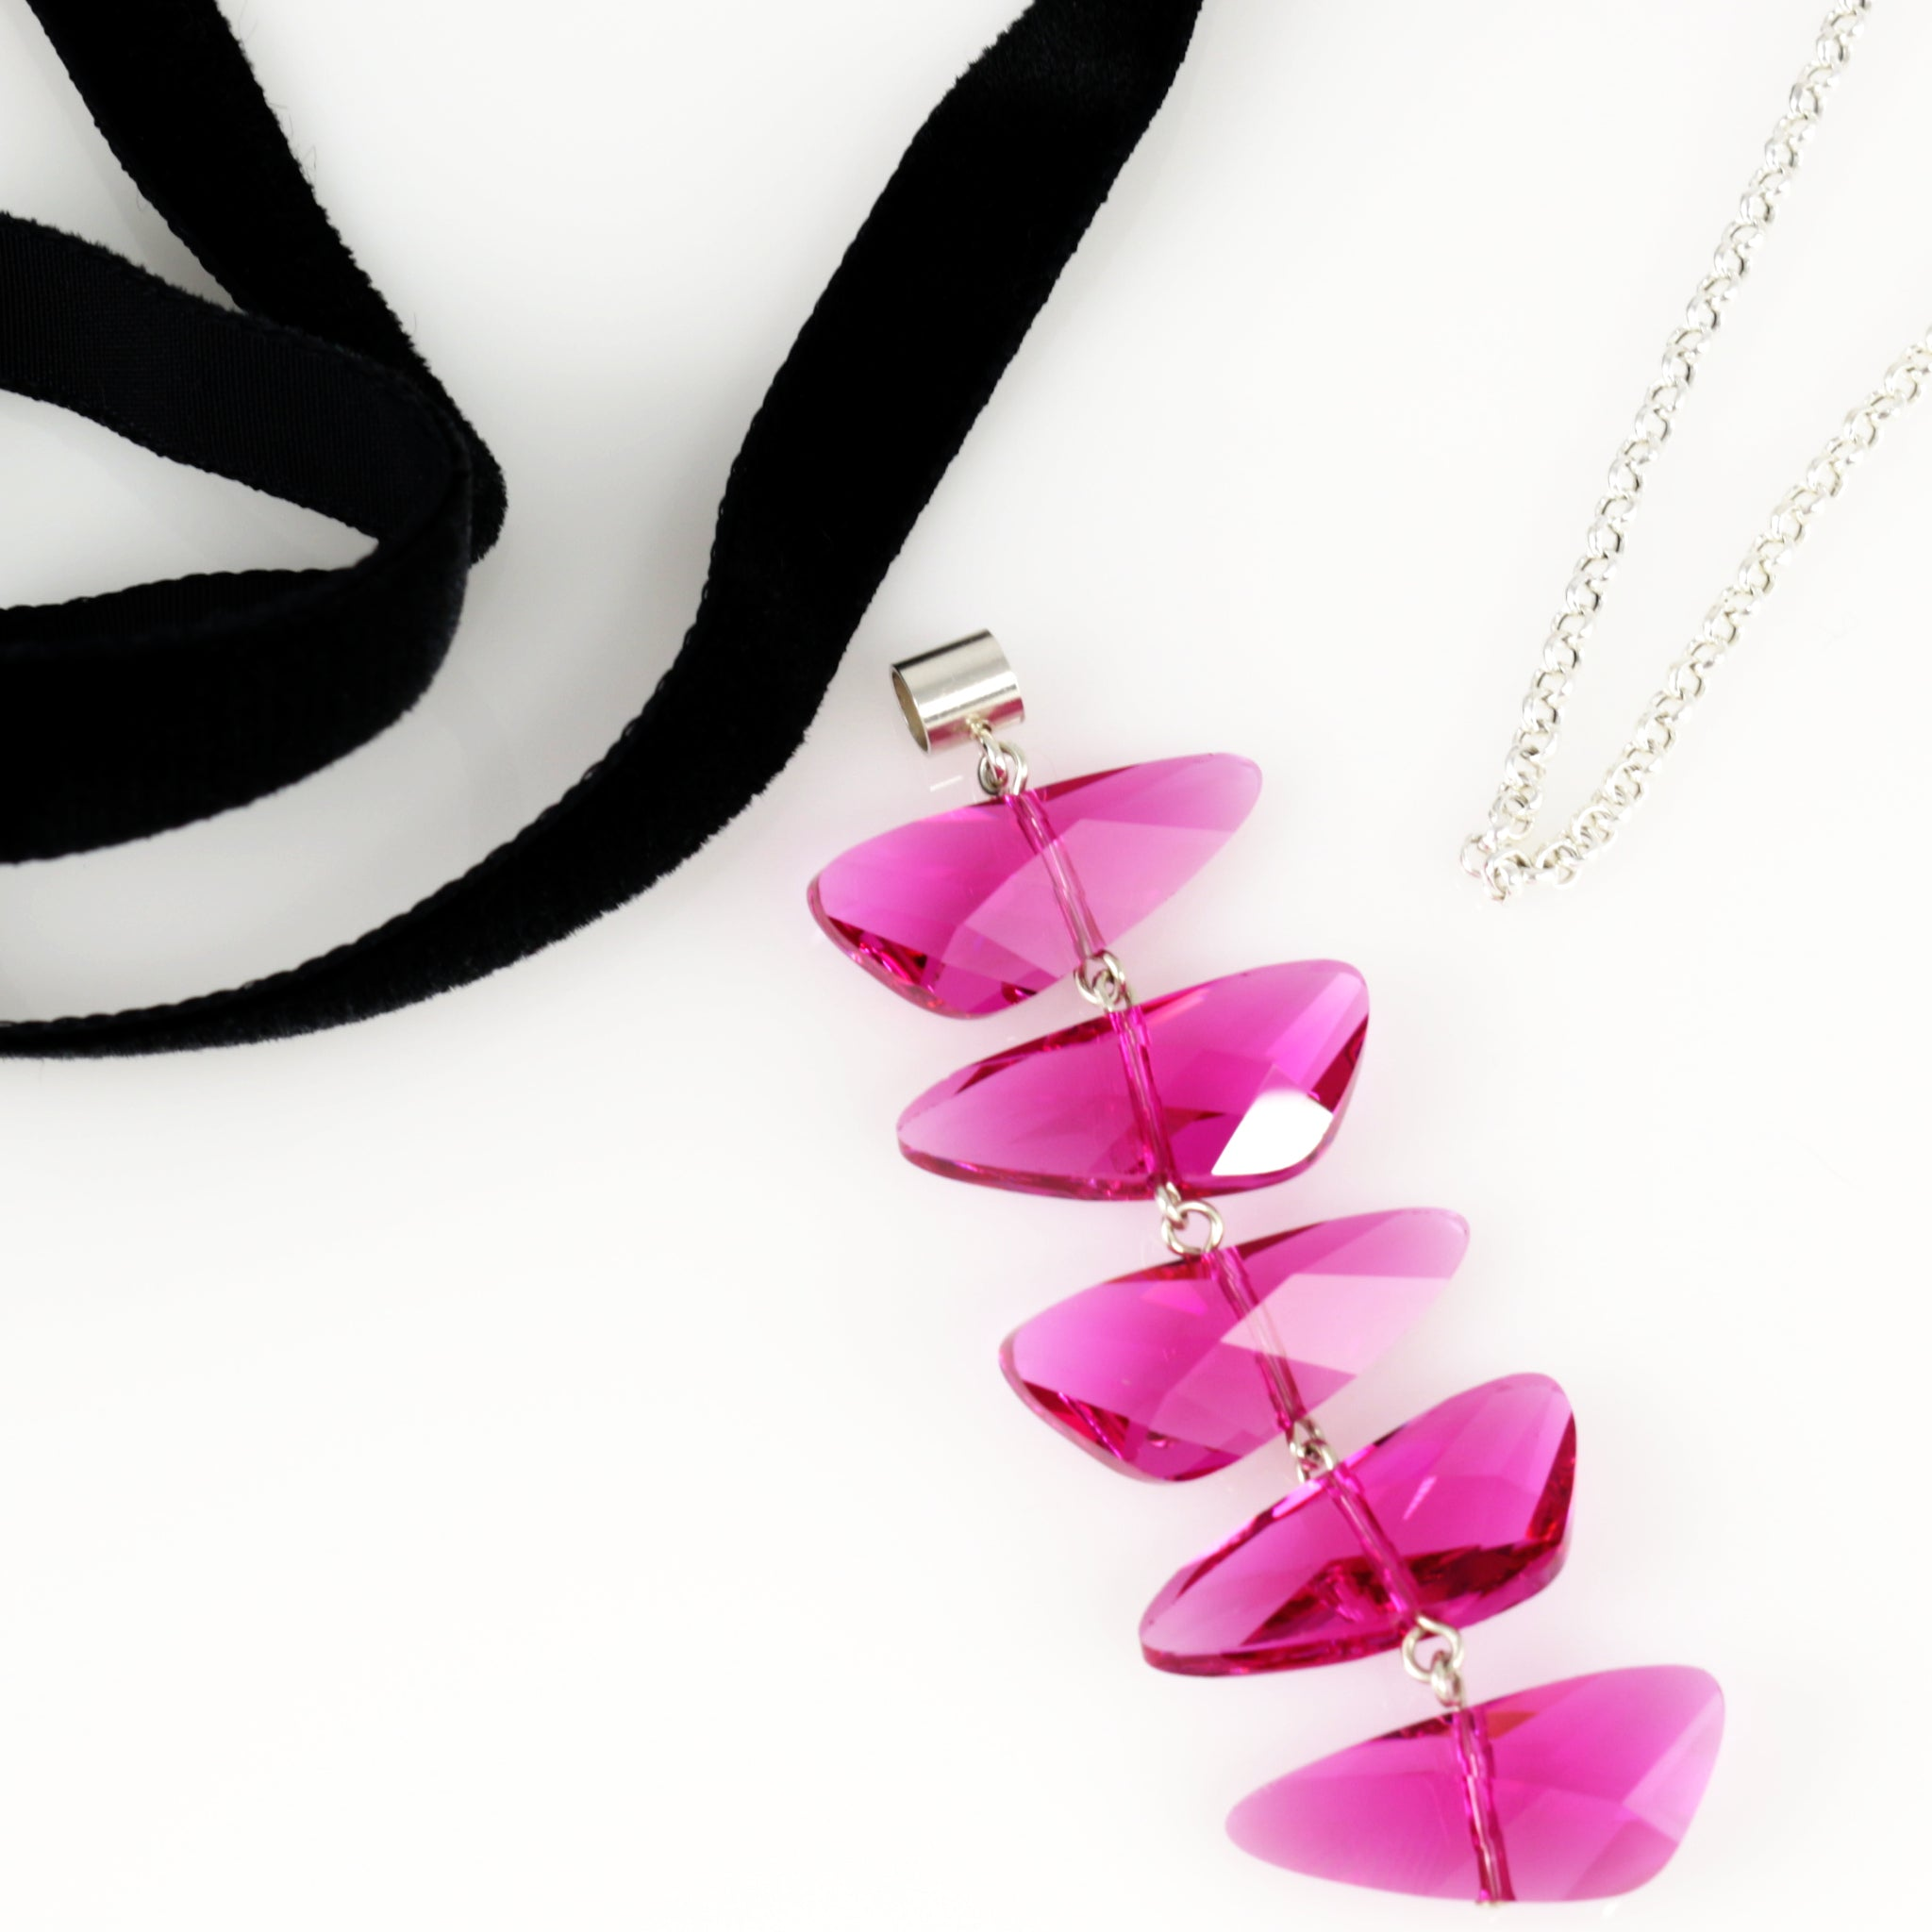 Reflections Set in Fuchsia